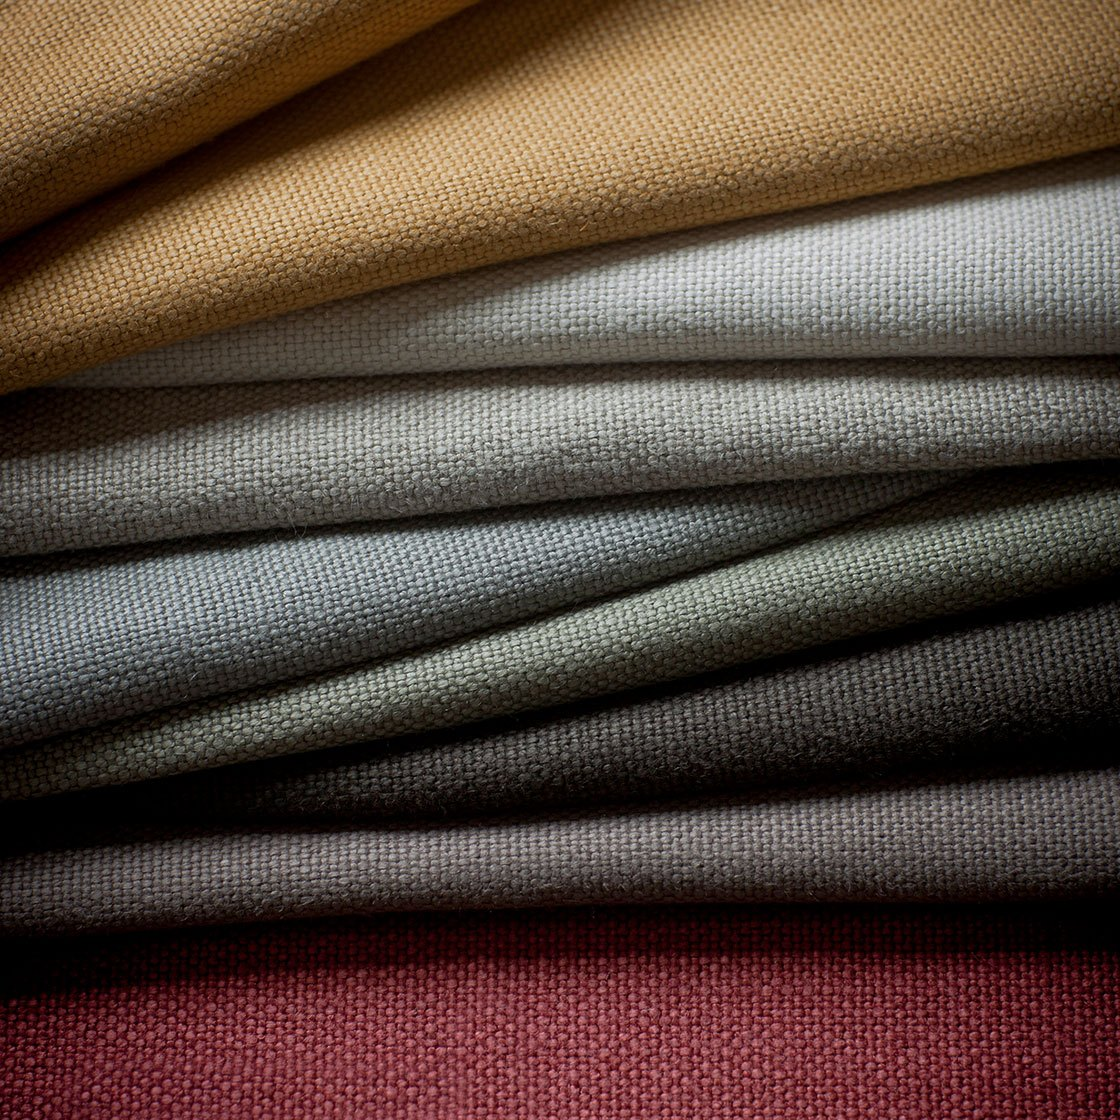 Donegal Linen - Group - Beaumont & Fletcher - Beaumont & Fletcher